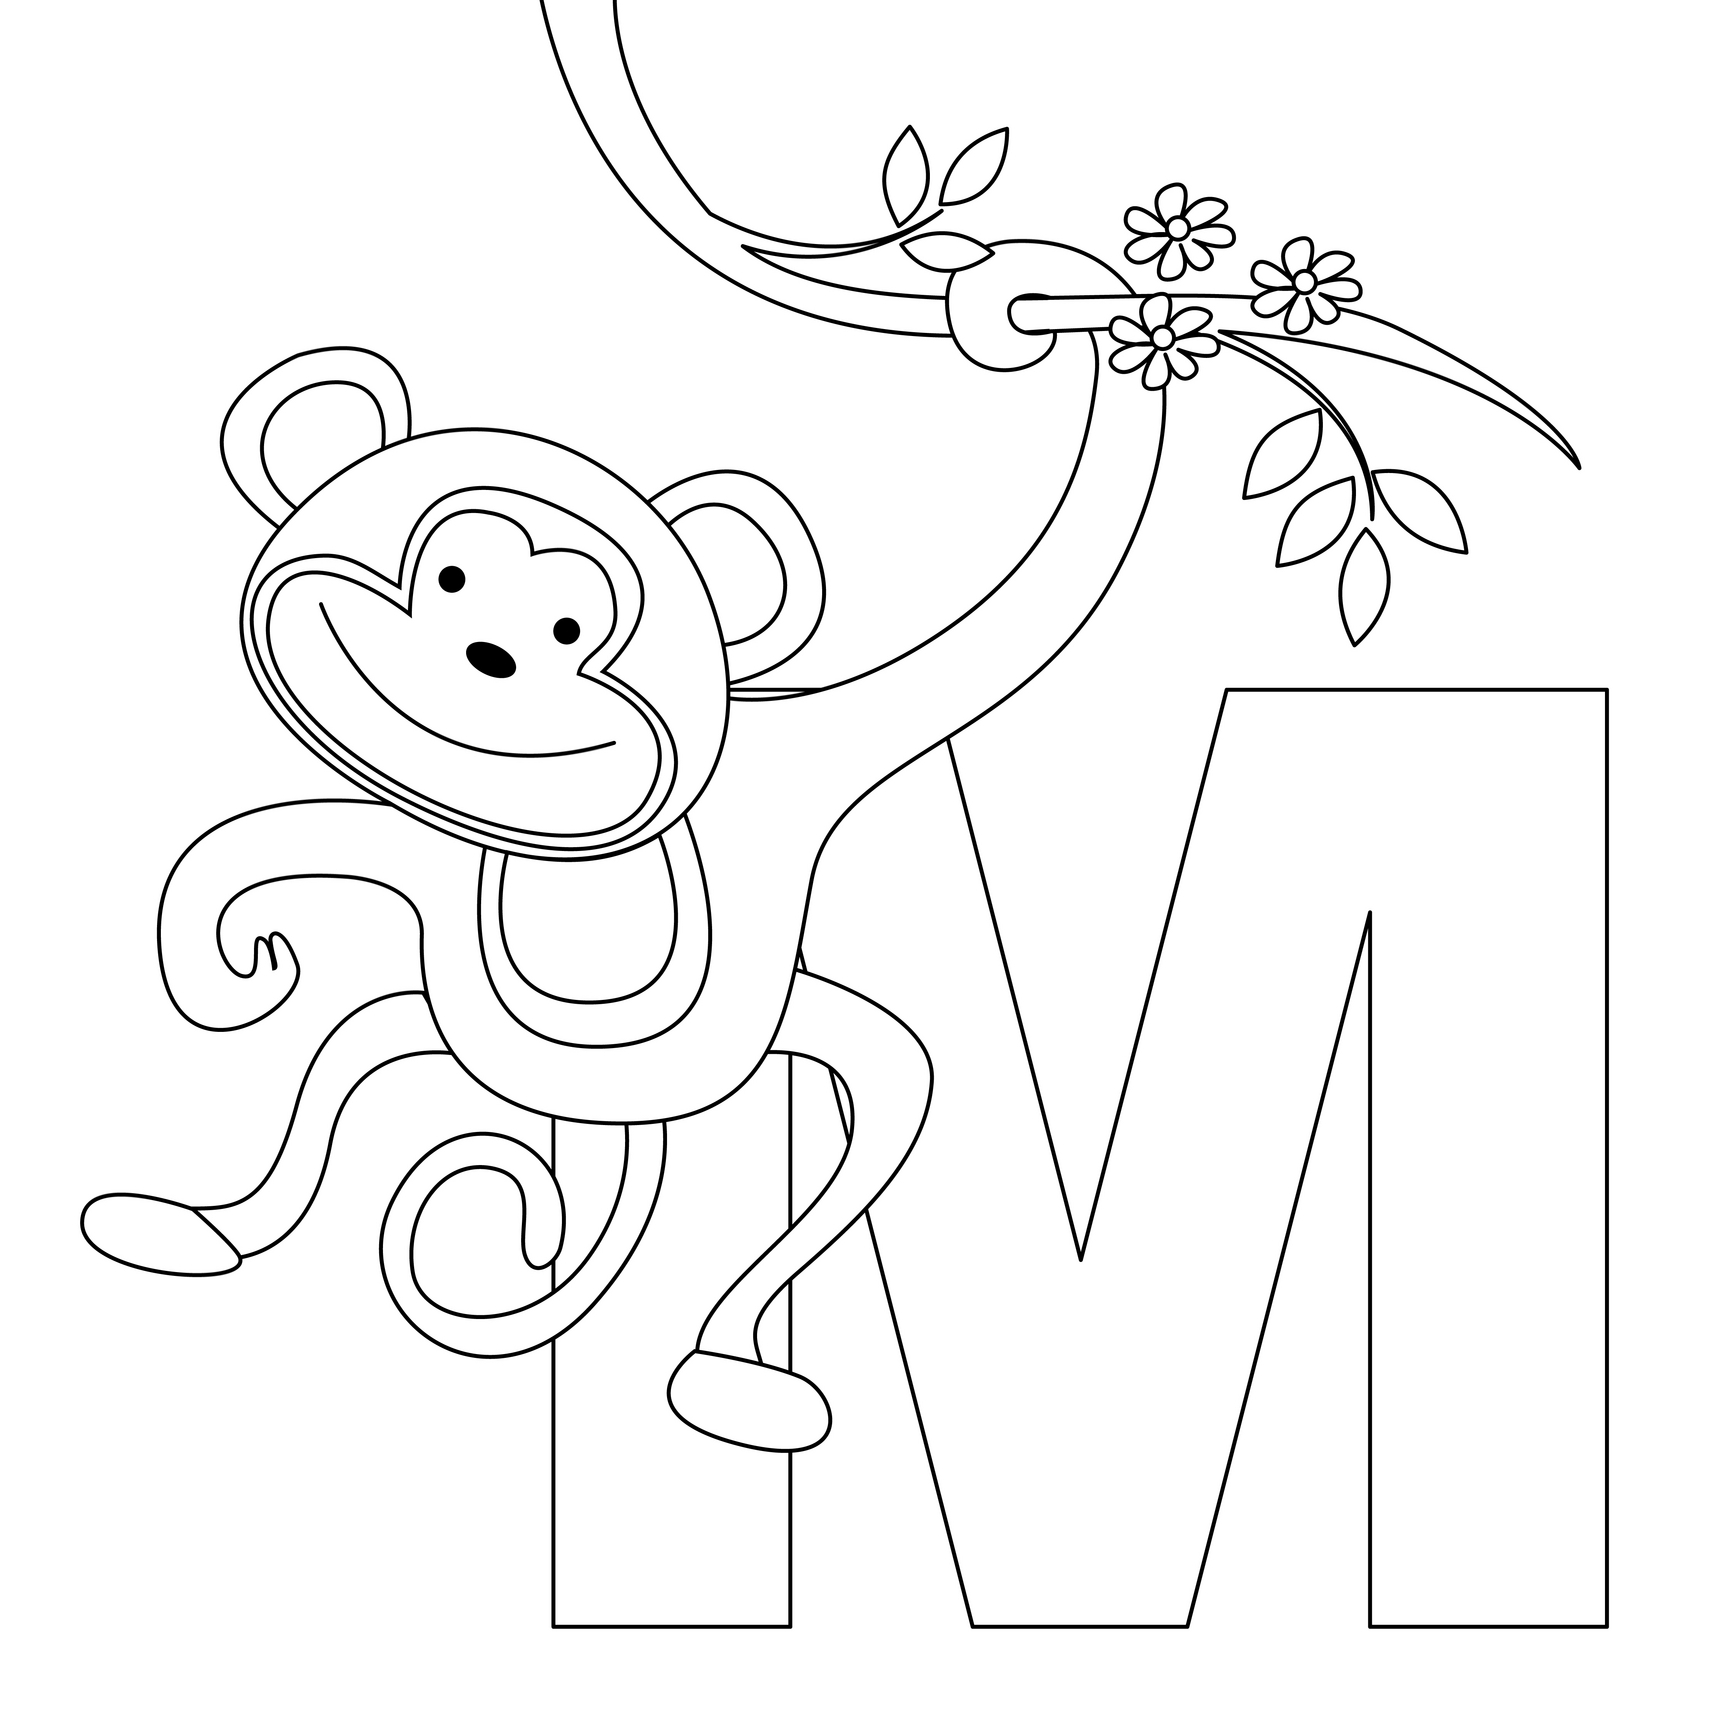 1732x1732 Animal Alphabet Letter M For Monkey! Here's A Simple Animal